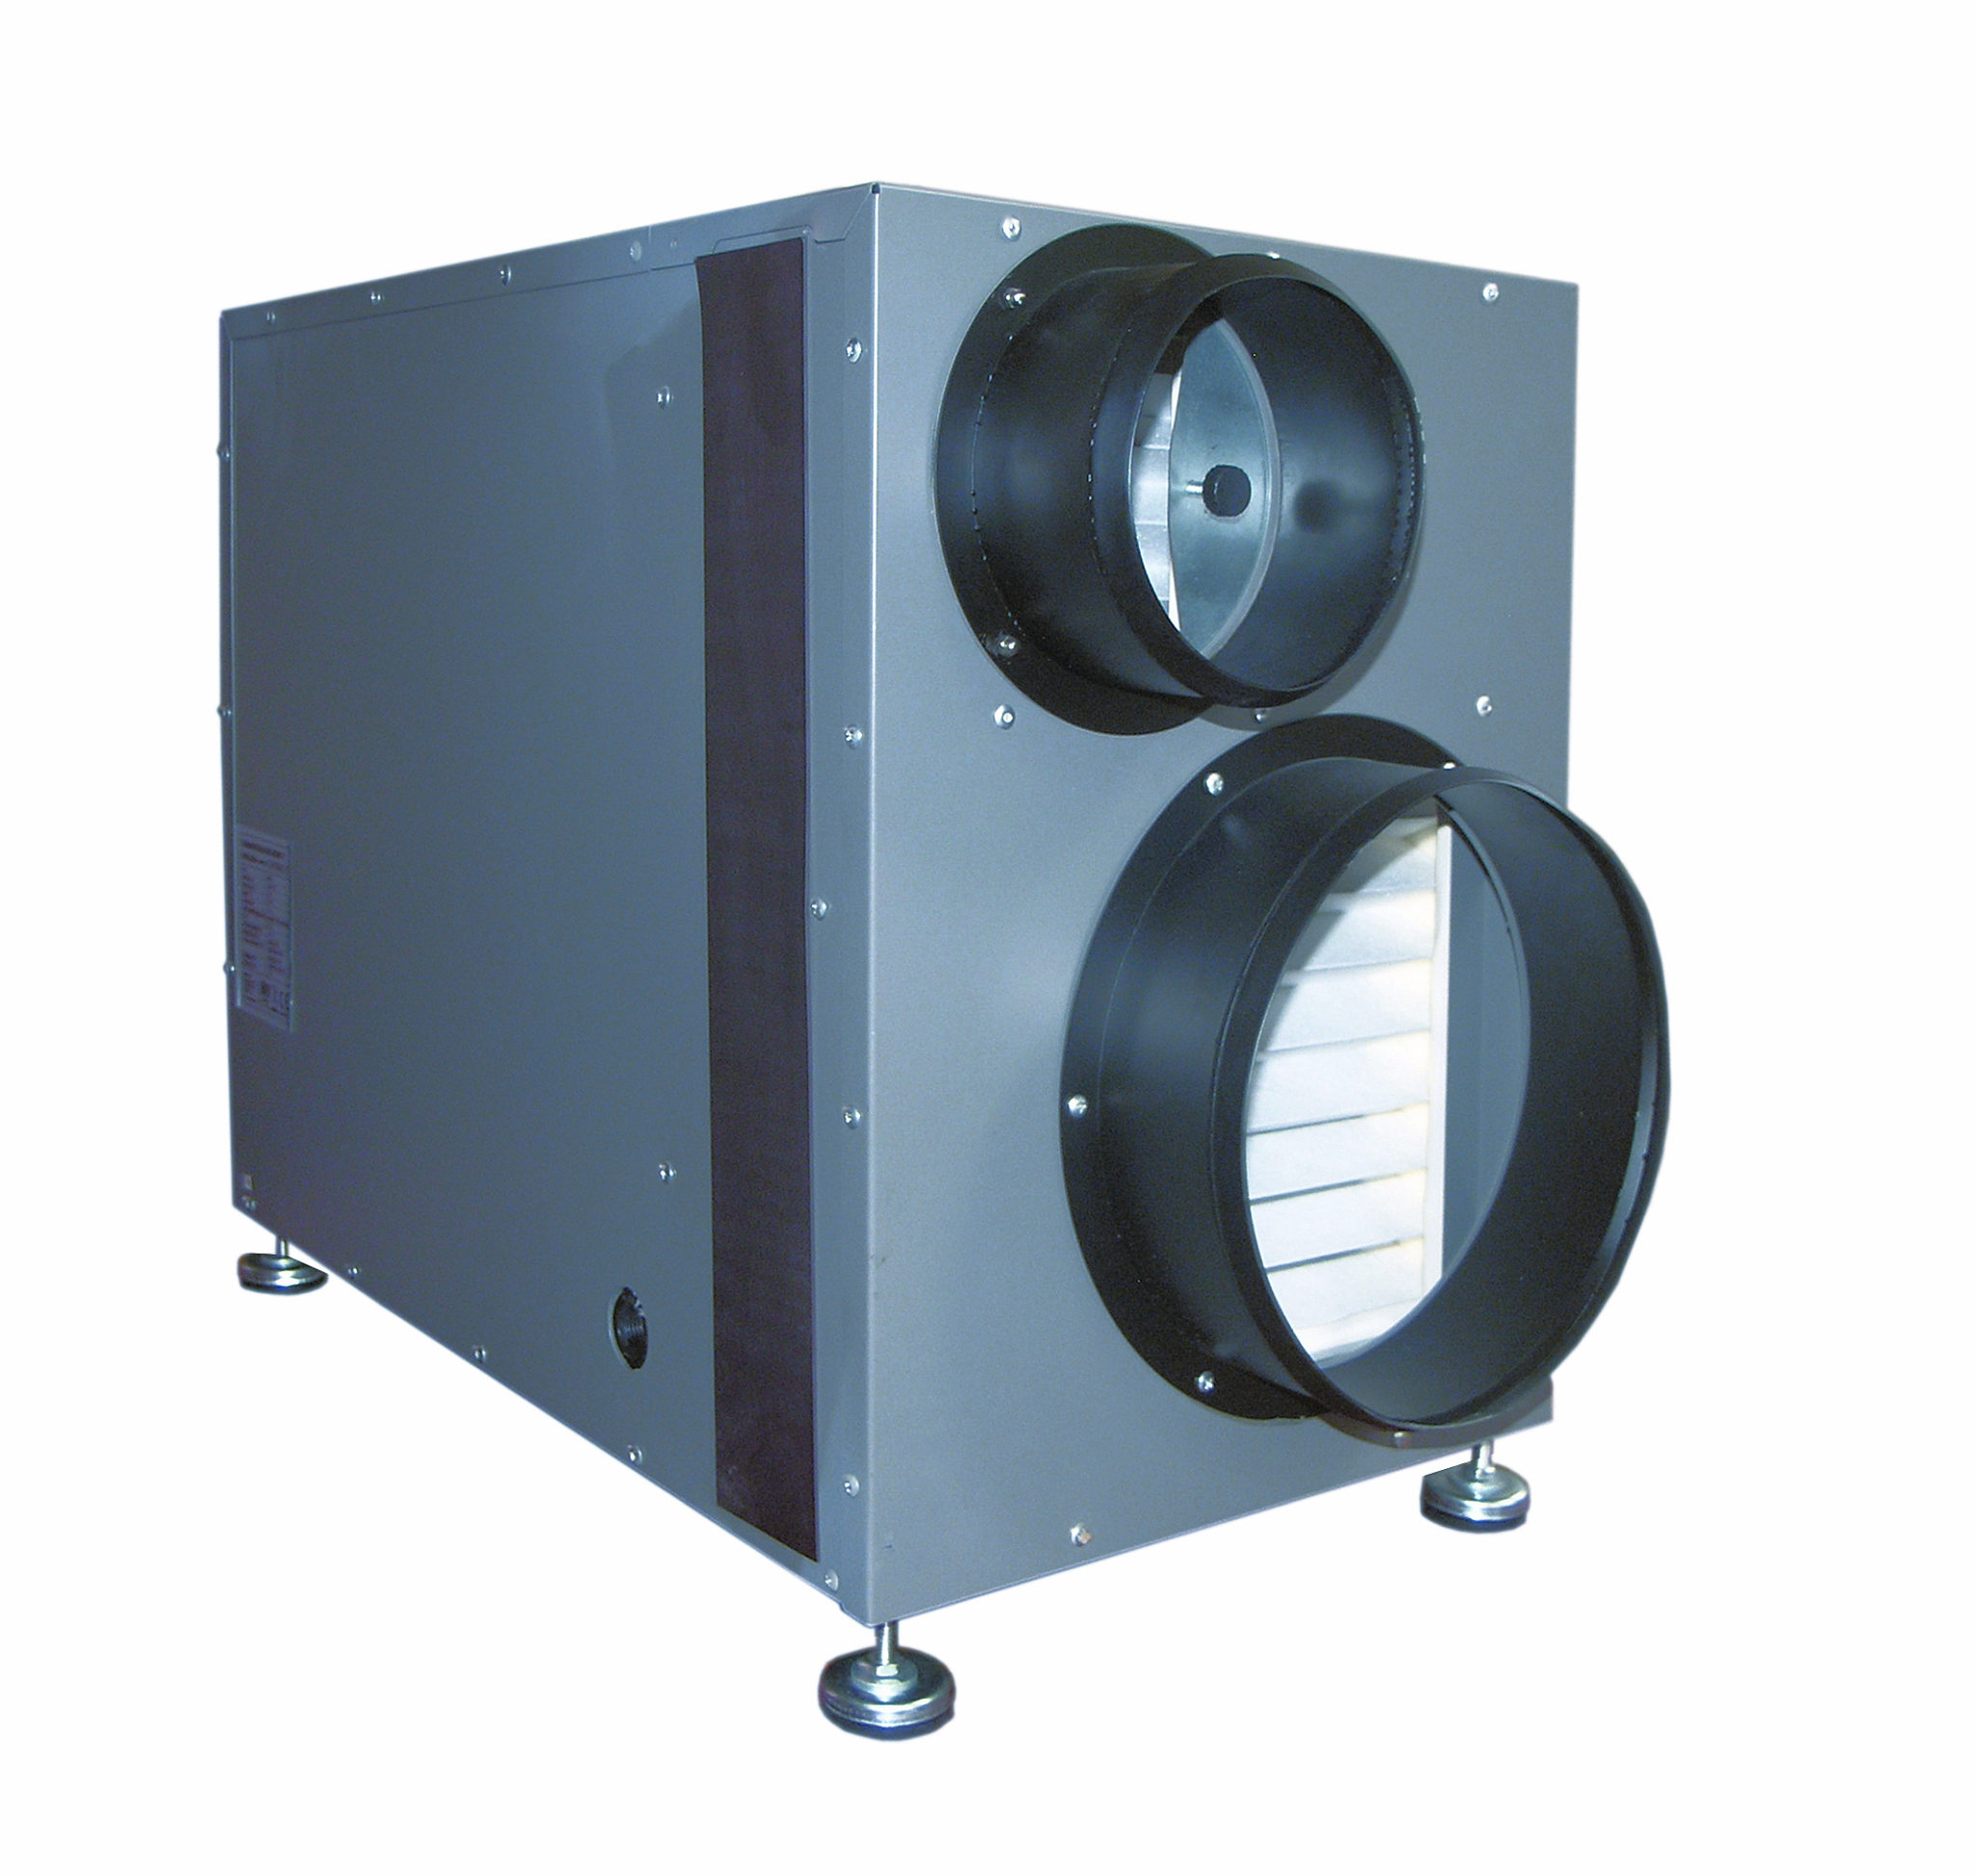 Air Ventilator Home : Heat recovery ventilator whole home dehumidifier ld